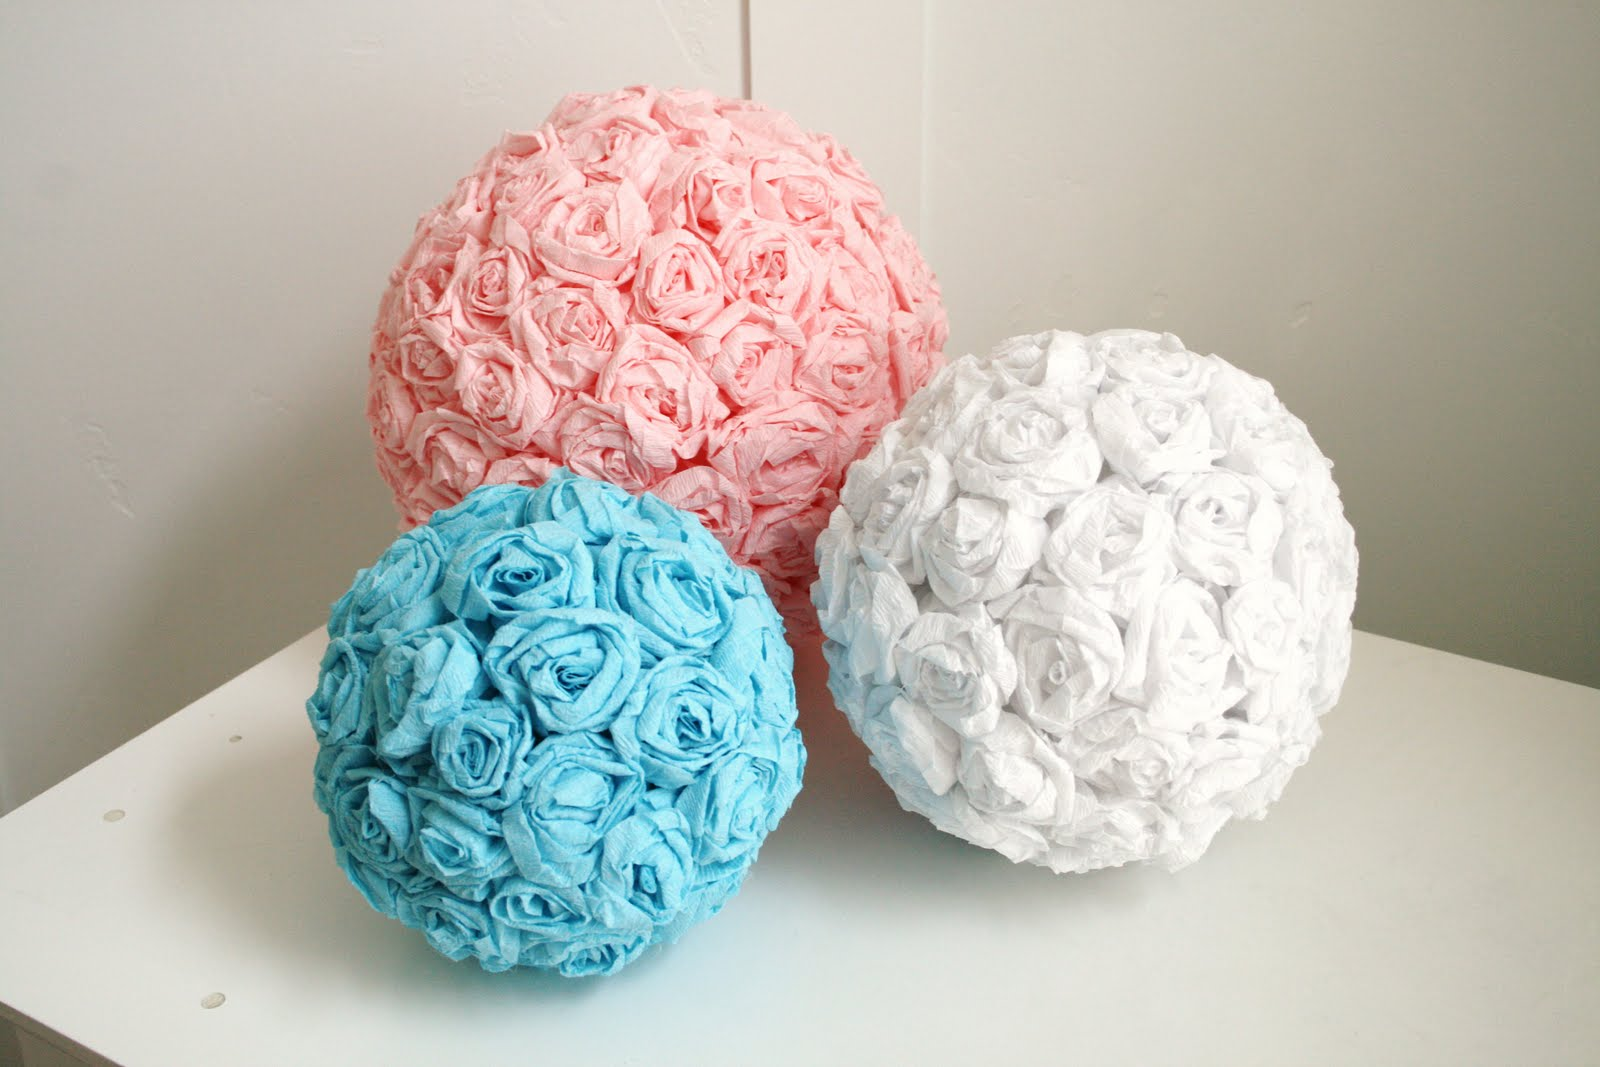 Diy crepe paper flower pomanders the sweetest occasion the crepe paper flower pomader how adorable are these theyd be perfect as decor for flower girls or the flowers could even be used to create mightylinksfo